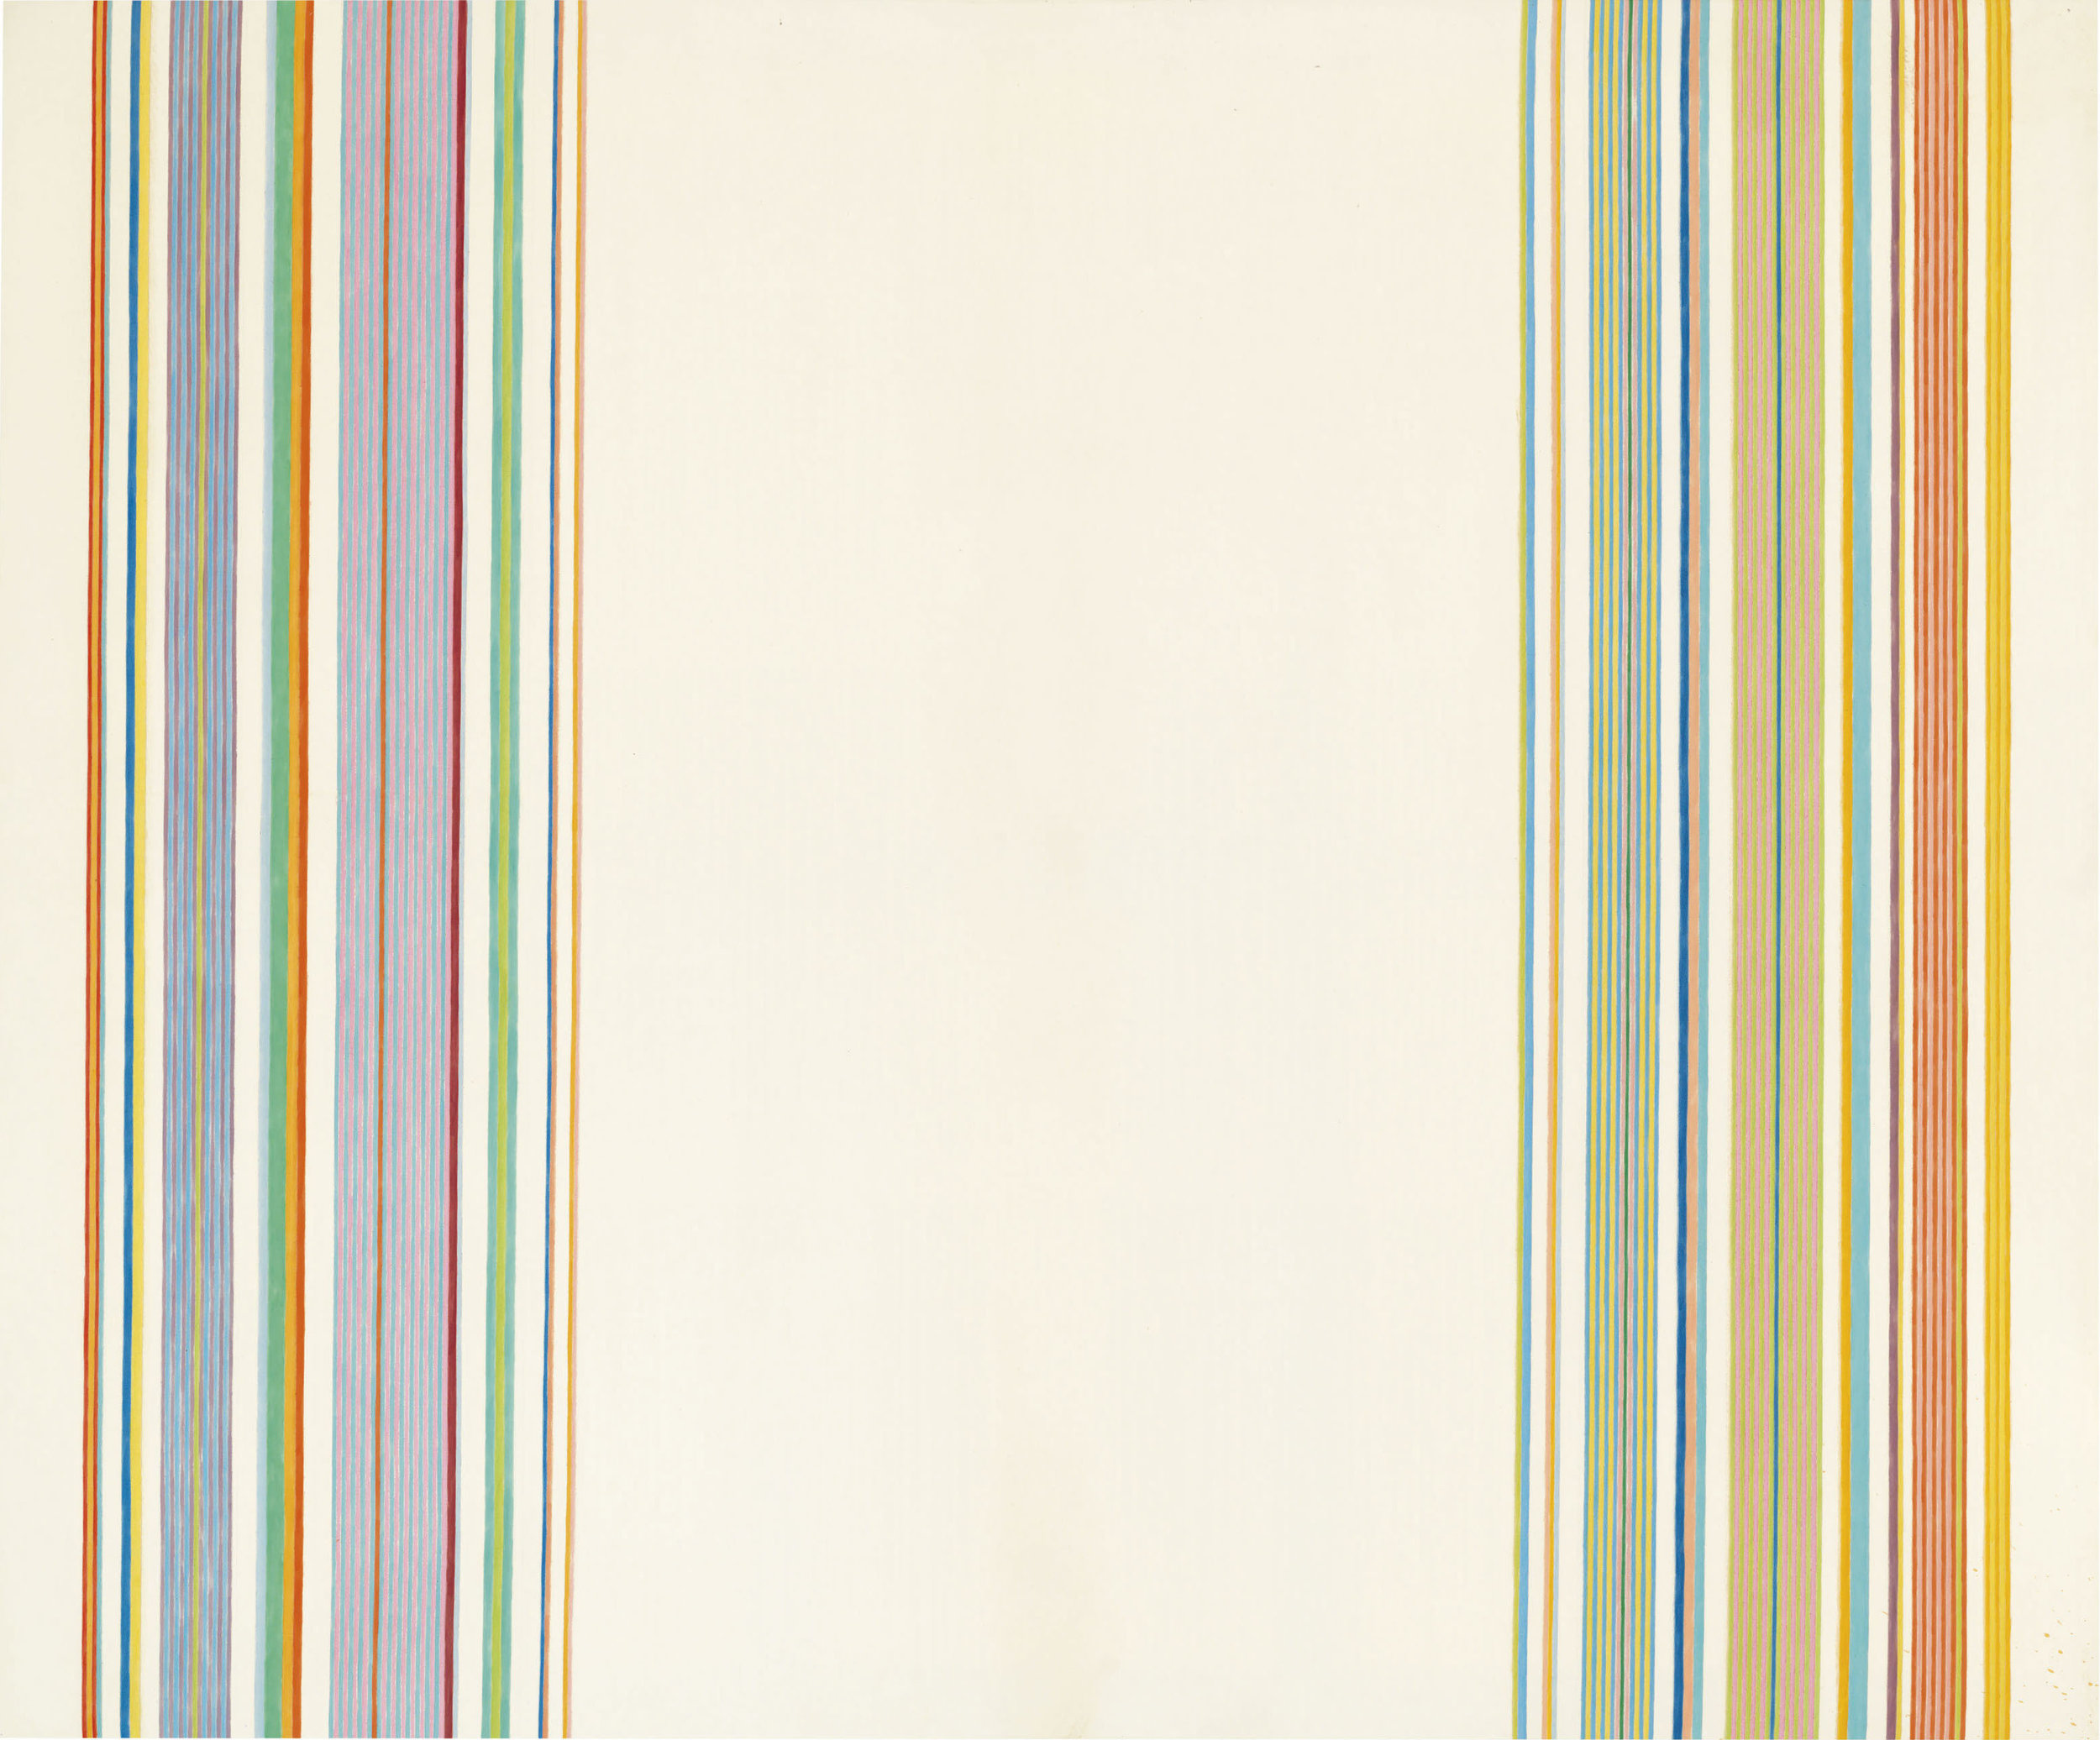 Sweet Hopscotch,  1960, Acrylic on canvas, 91 3/5 x 110 3/4 inches